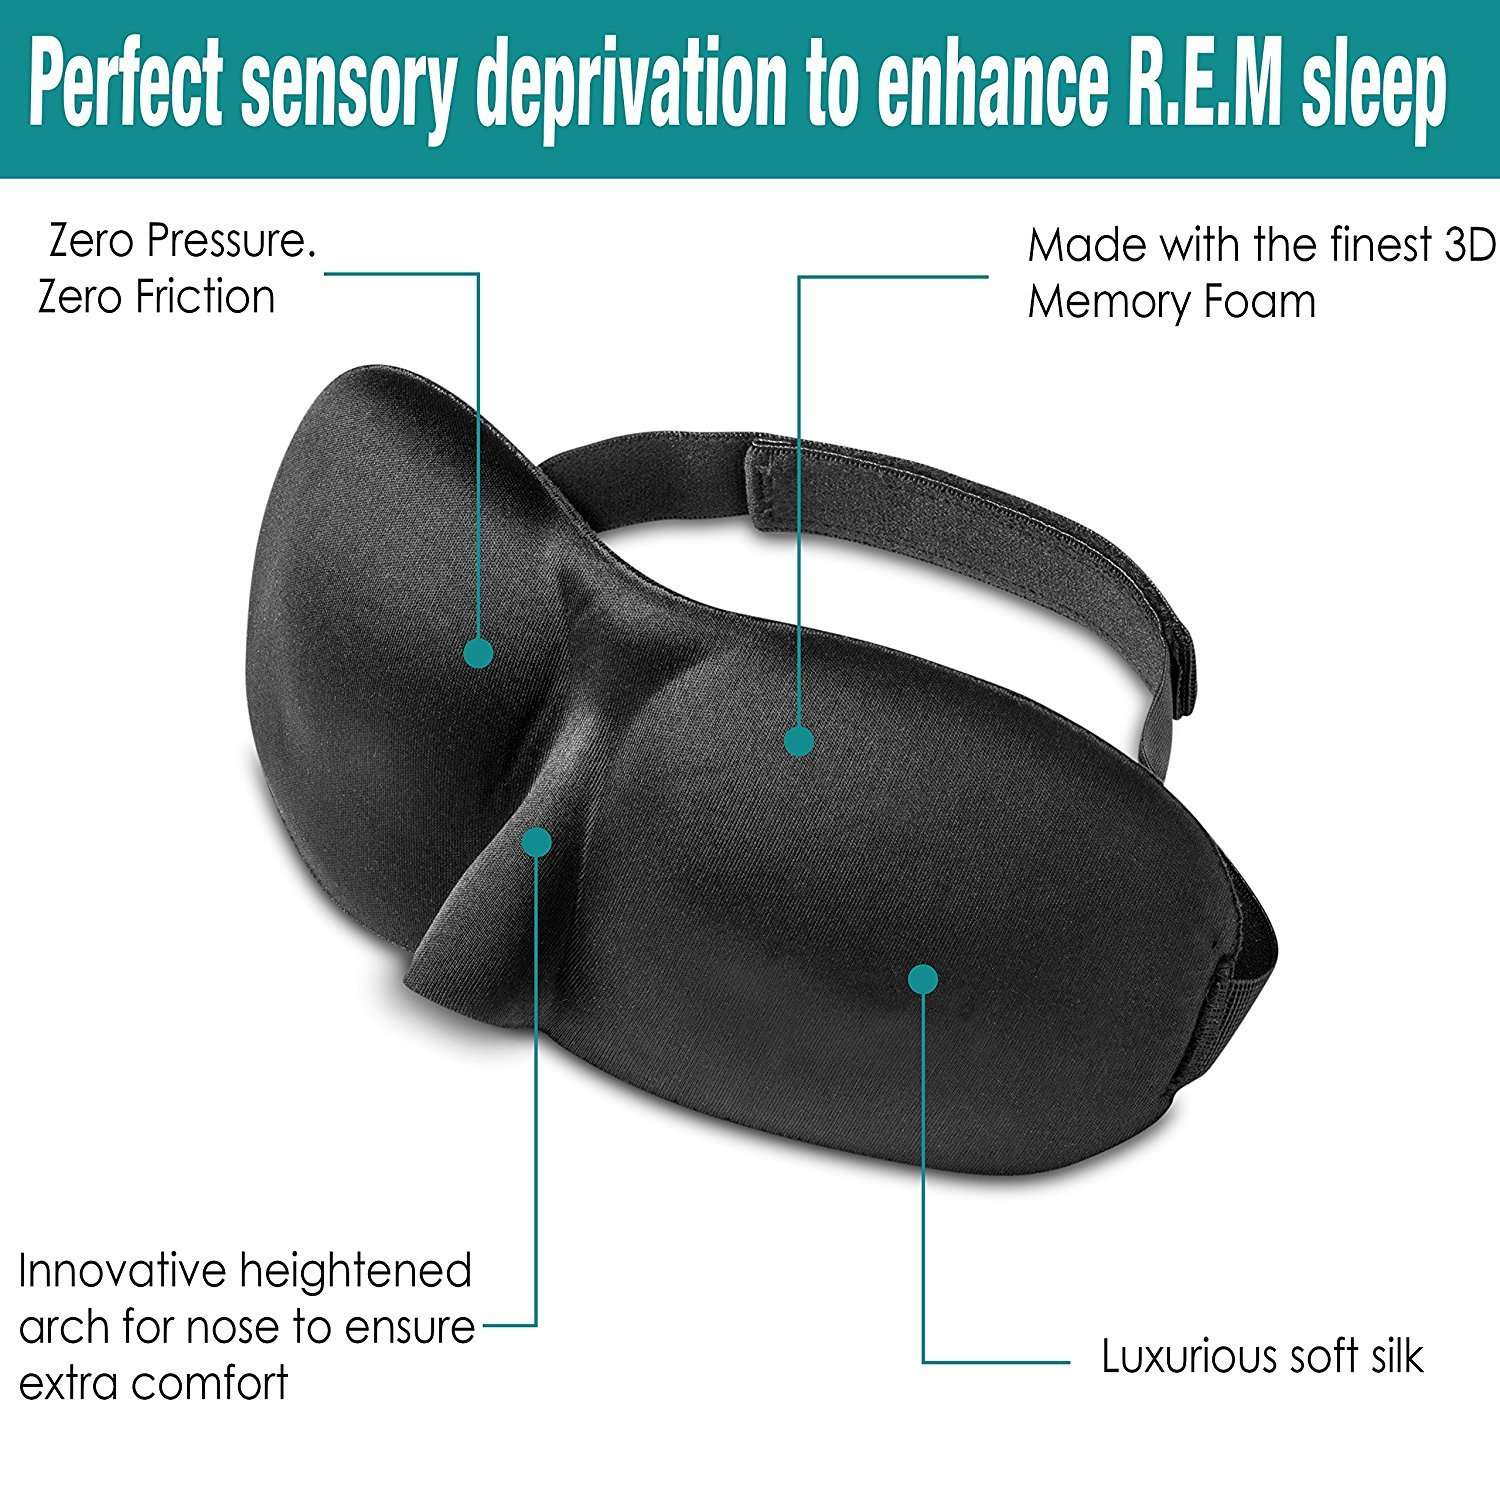 3D Memory Foam Sleep Mask With Heightened Nose Arch | Breathable Fabric & Adjustable Velcro Strap | For Men, Women, Meditation, Shift Workers & More | Bonus Travel Case & Ear Plugs by Generic (Image #1)